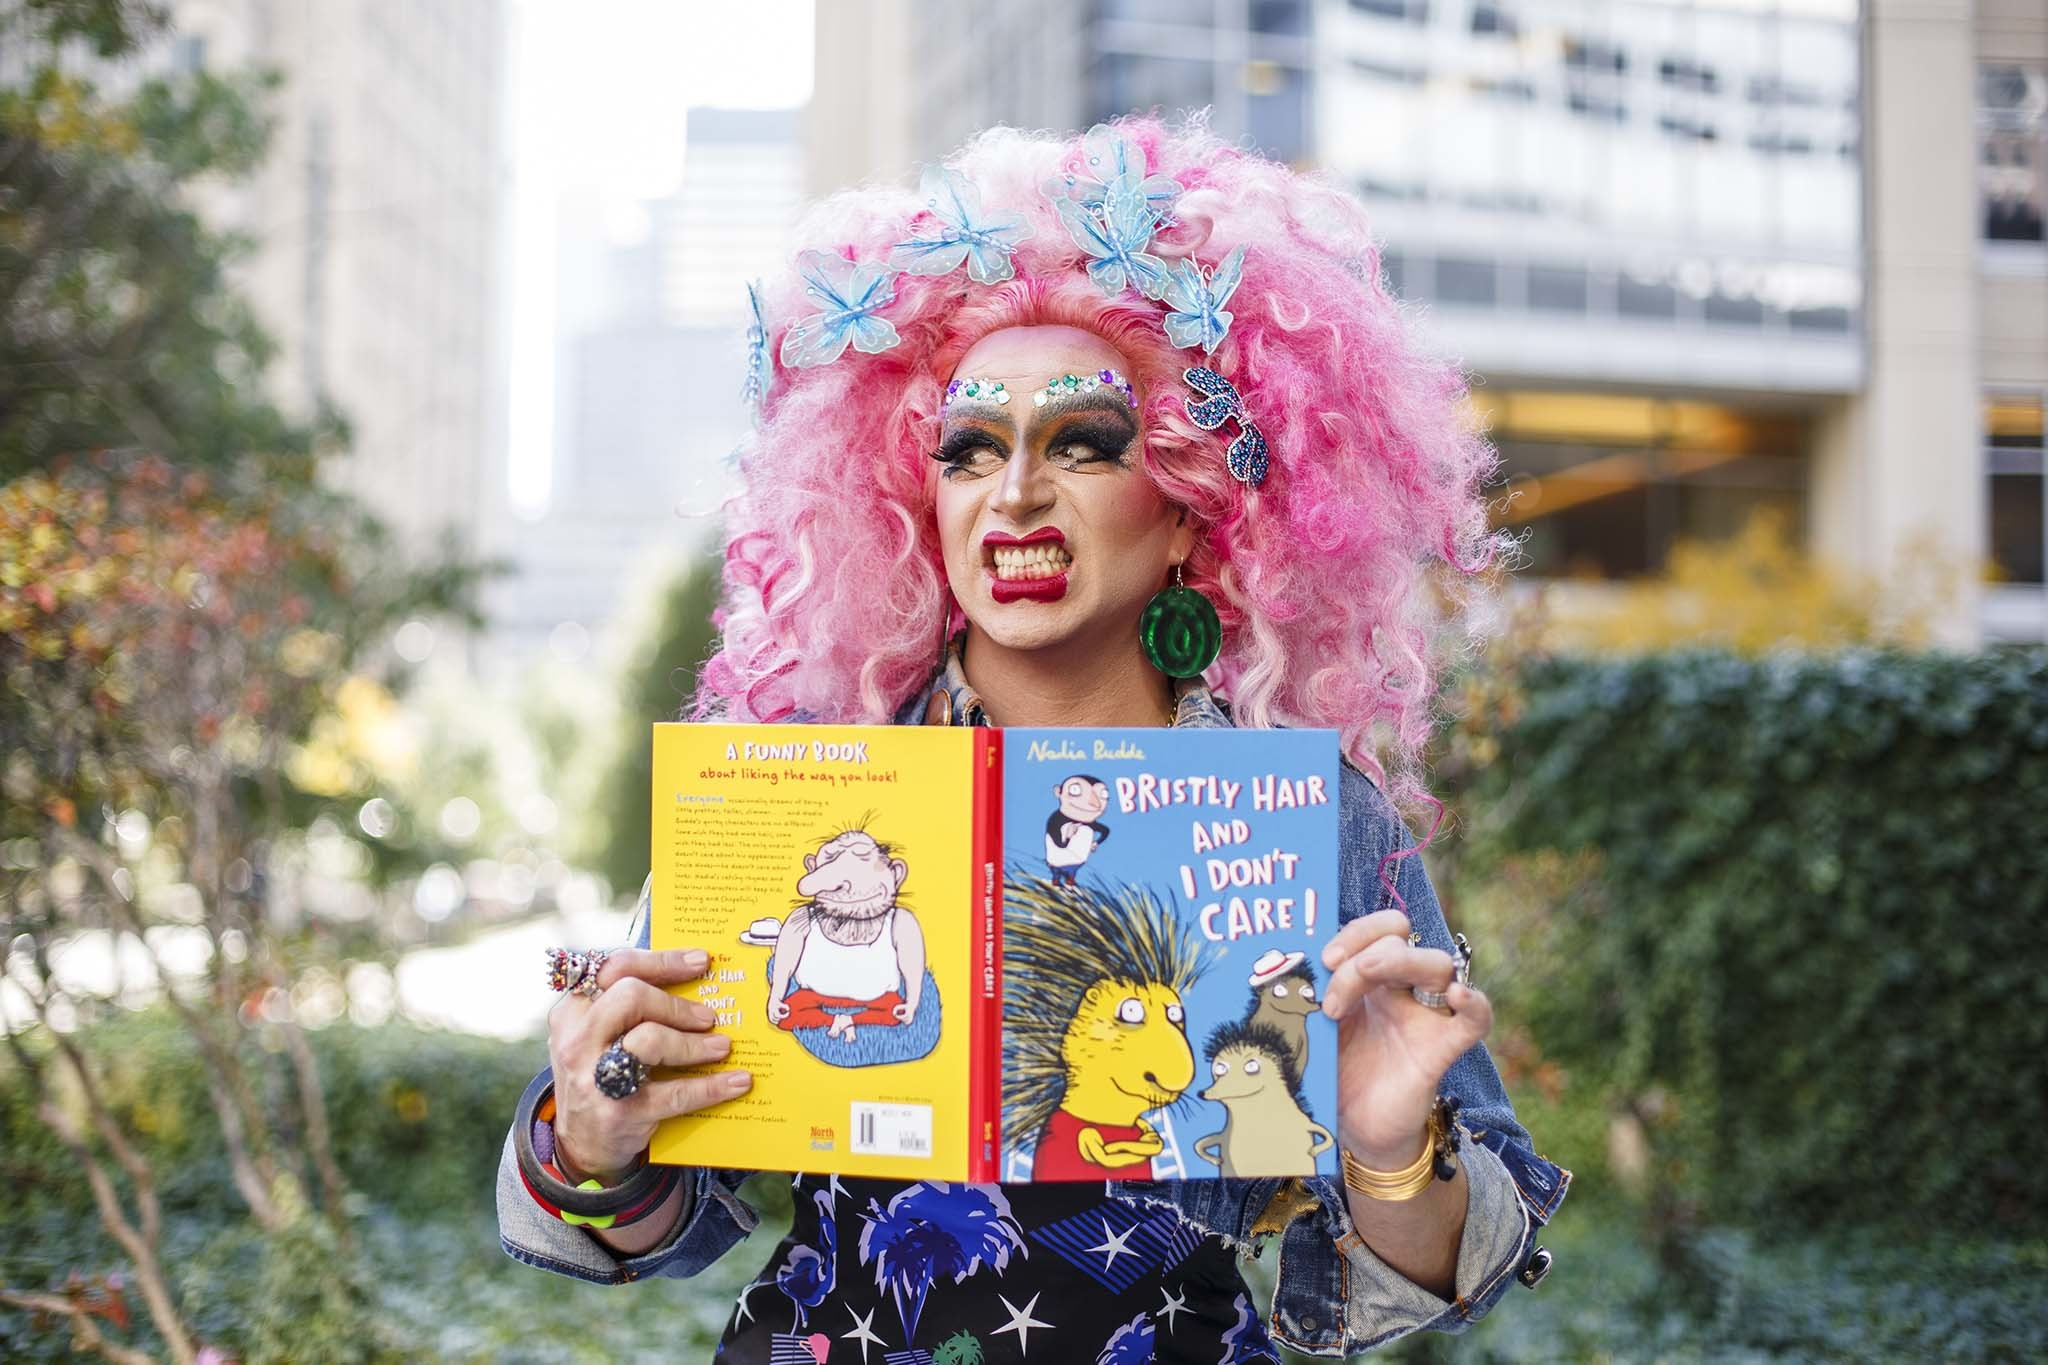 Storytime with Drag Queens